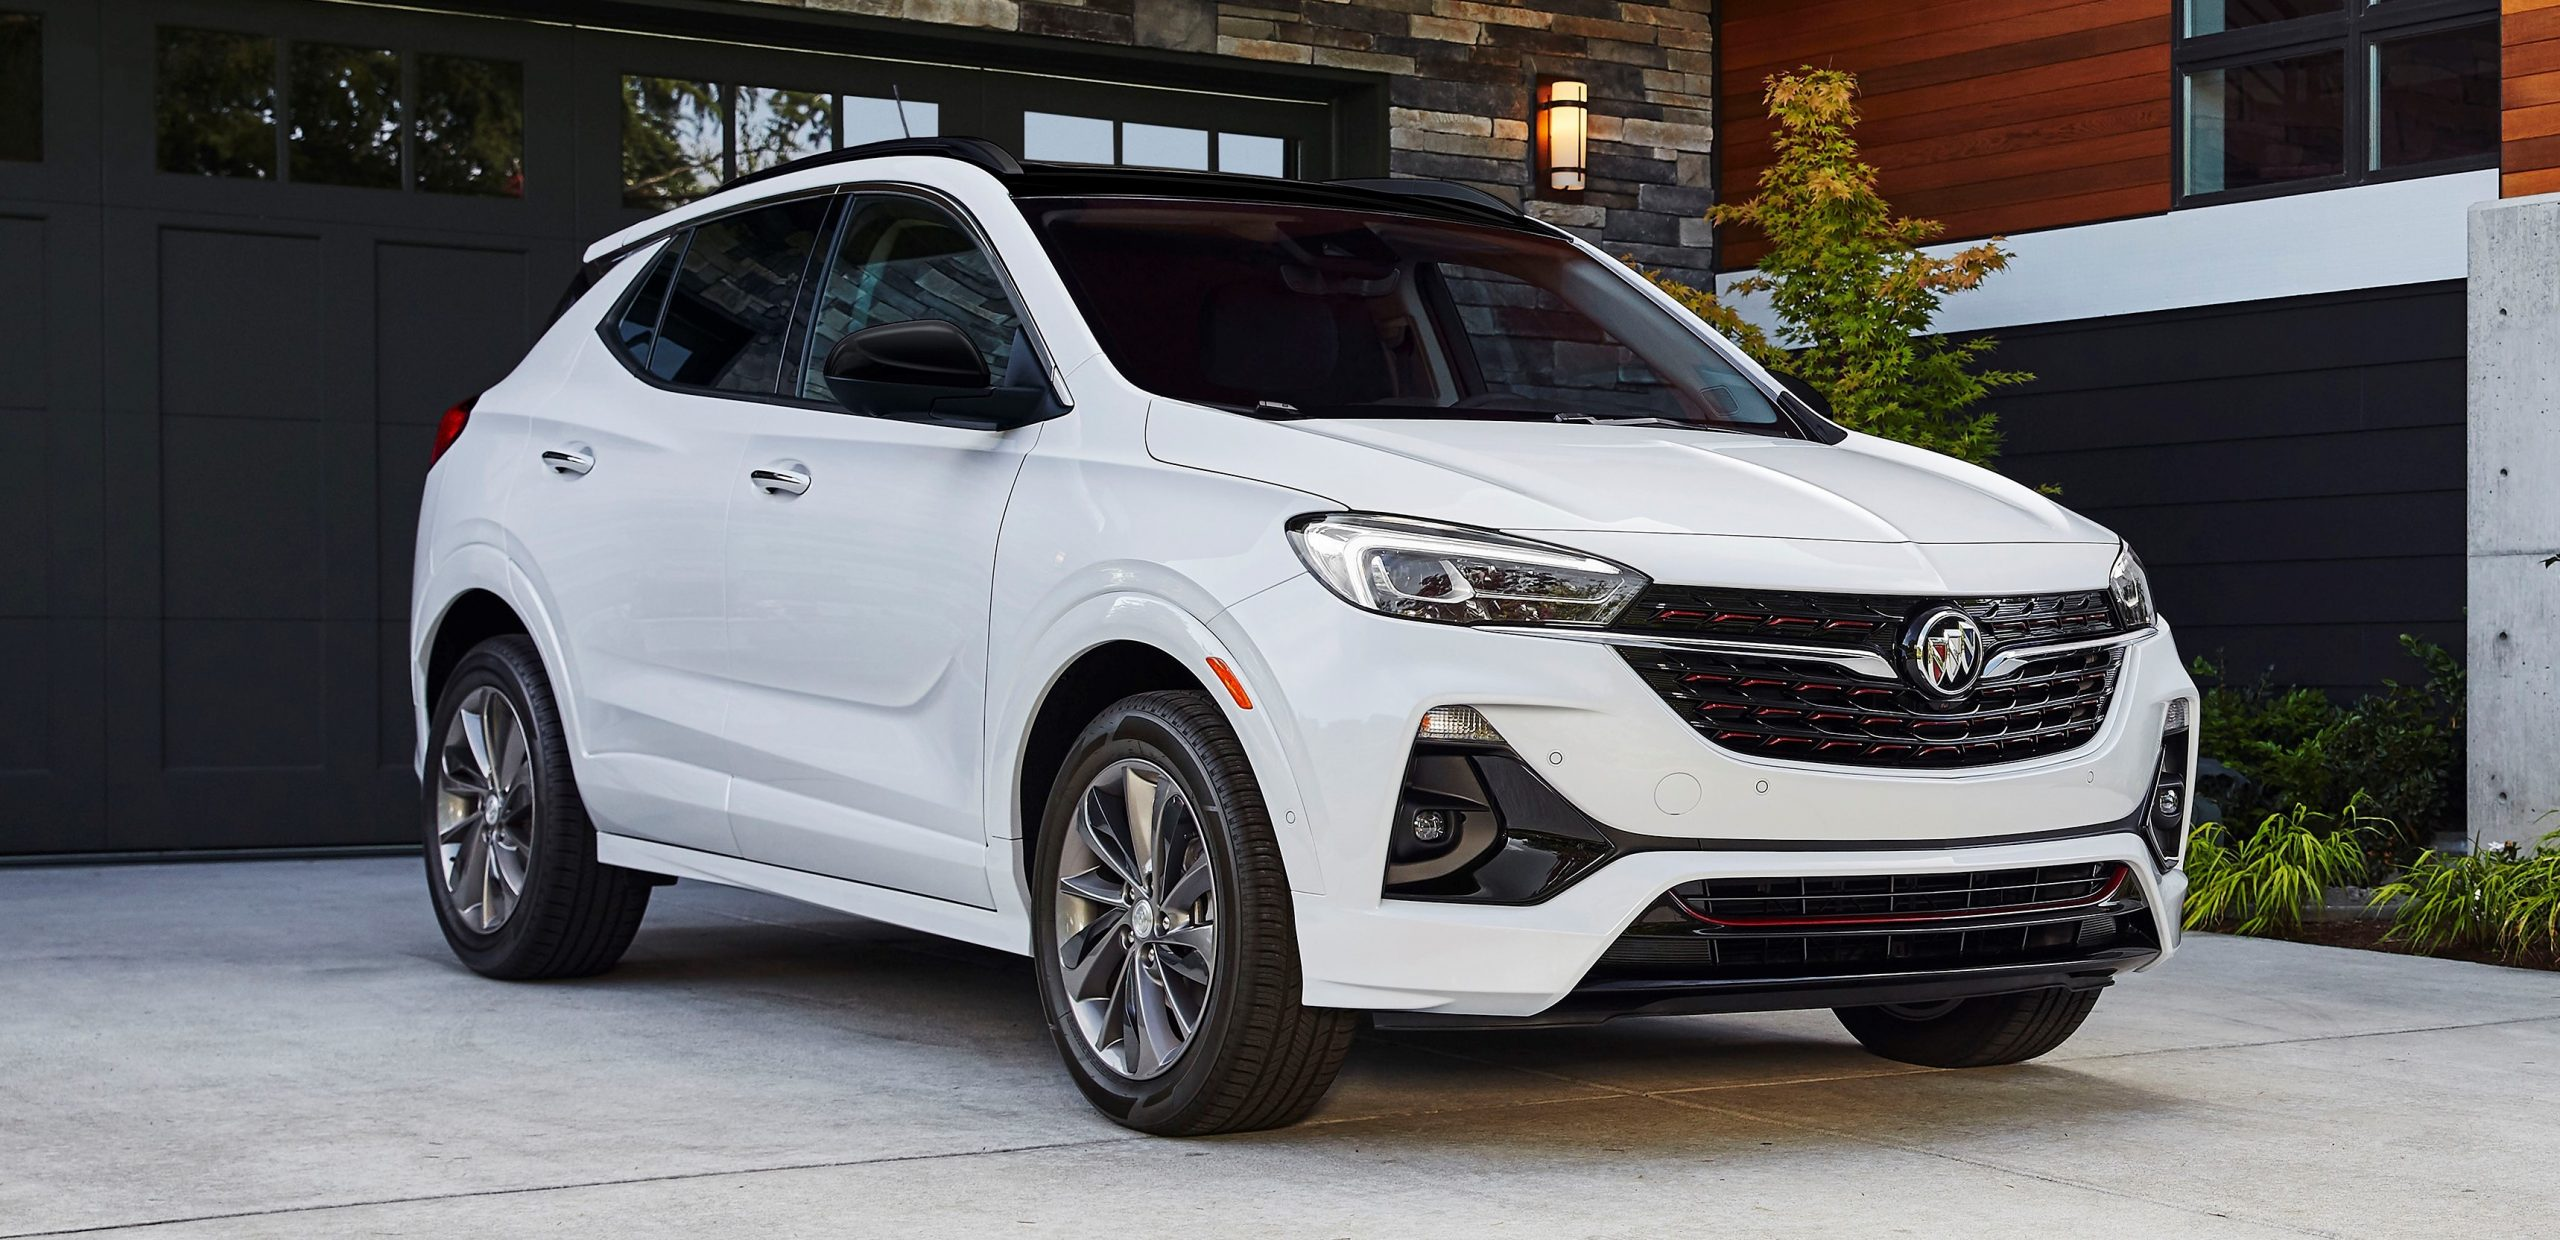 Buick Encore Gx Debuts In La | Gm Authority Where Is The New 2022 Buick Encore Gx Built